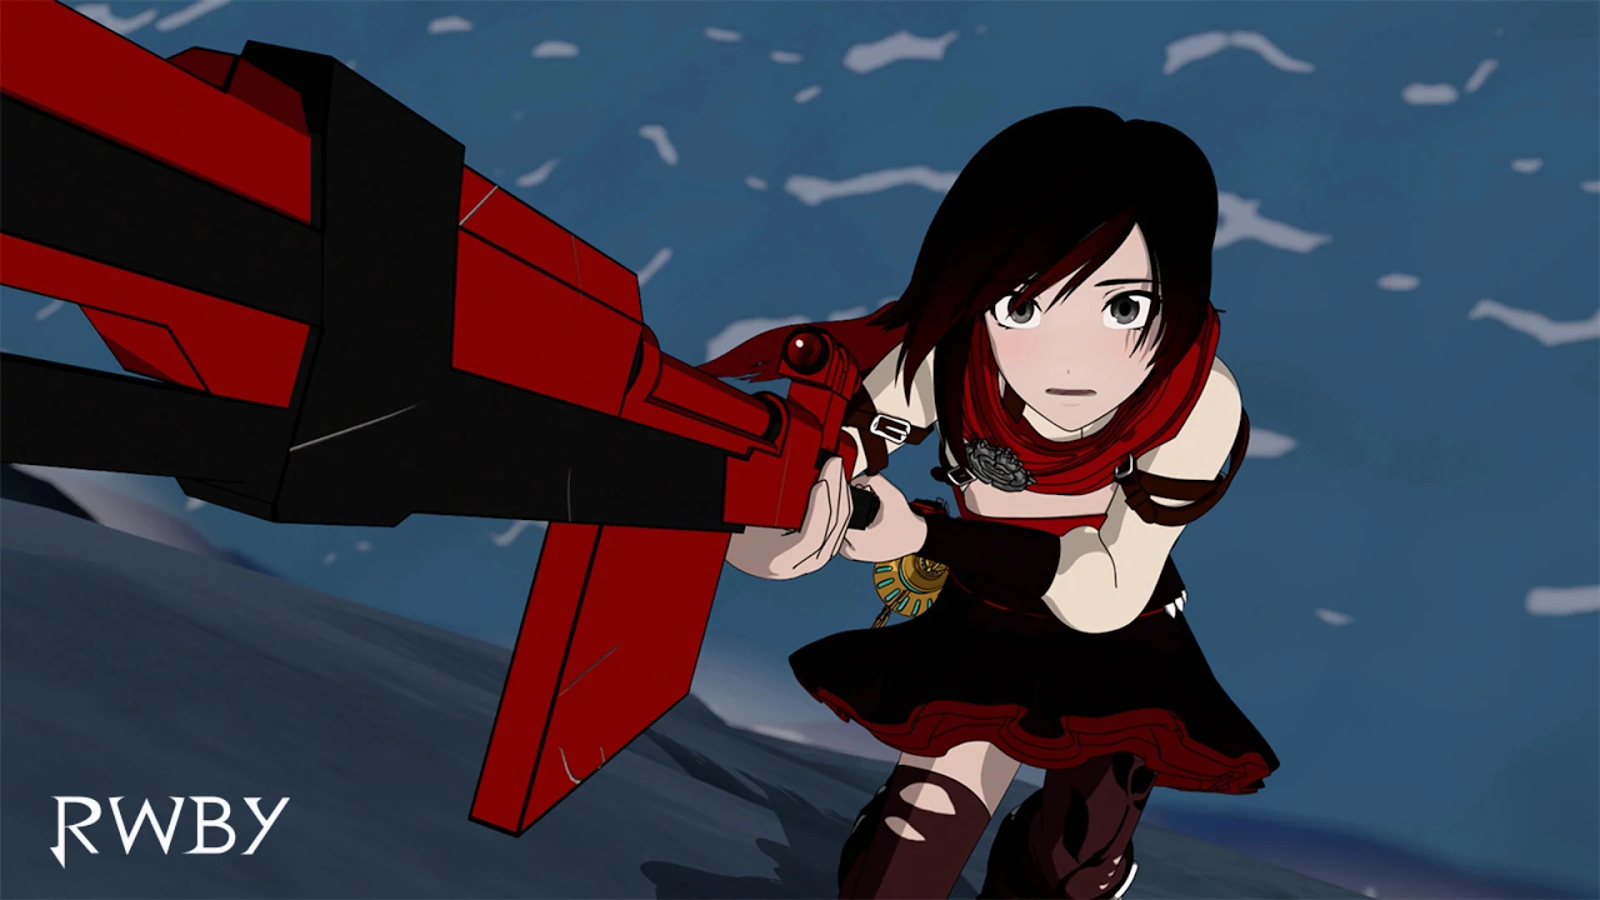 RWBY Volume 6 Episode 12 - Seeing Red: Review